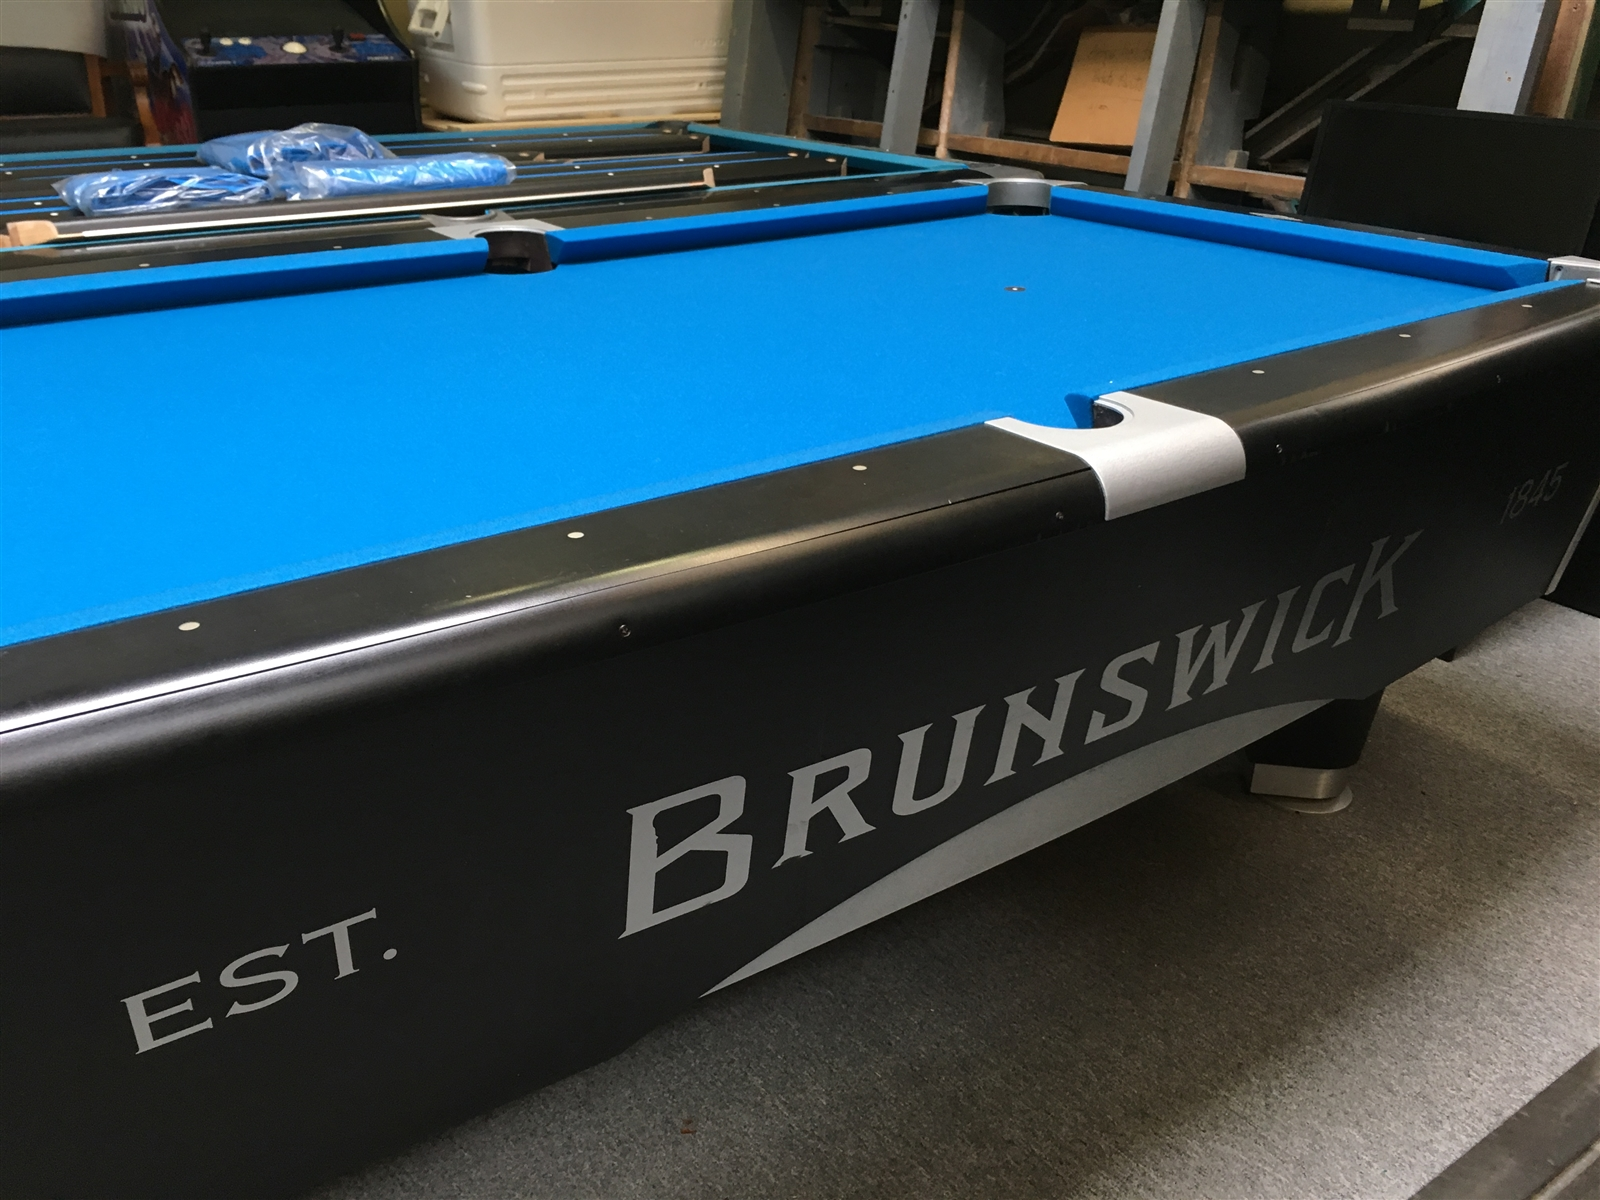 w md billiard table tennis bonus your on way tools prod sports points more brookfield shopping spin appliances electronics online shop earn top